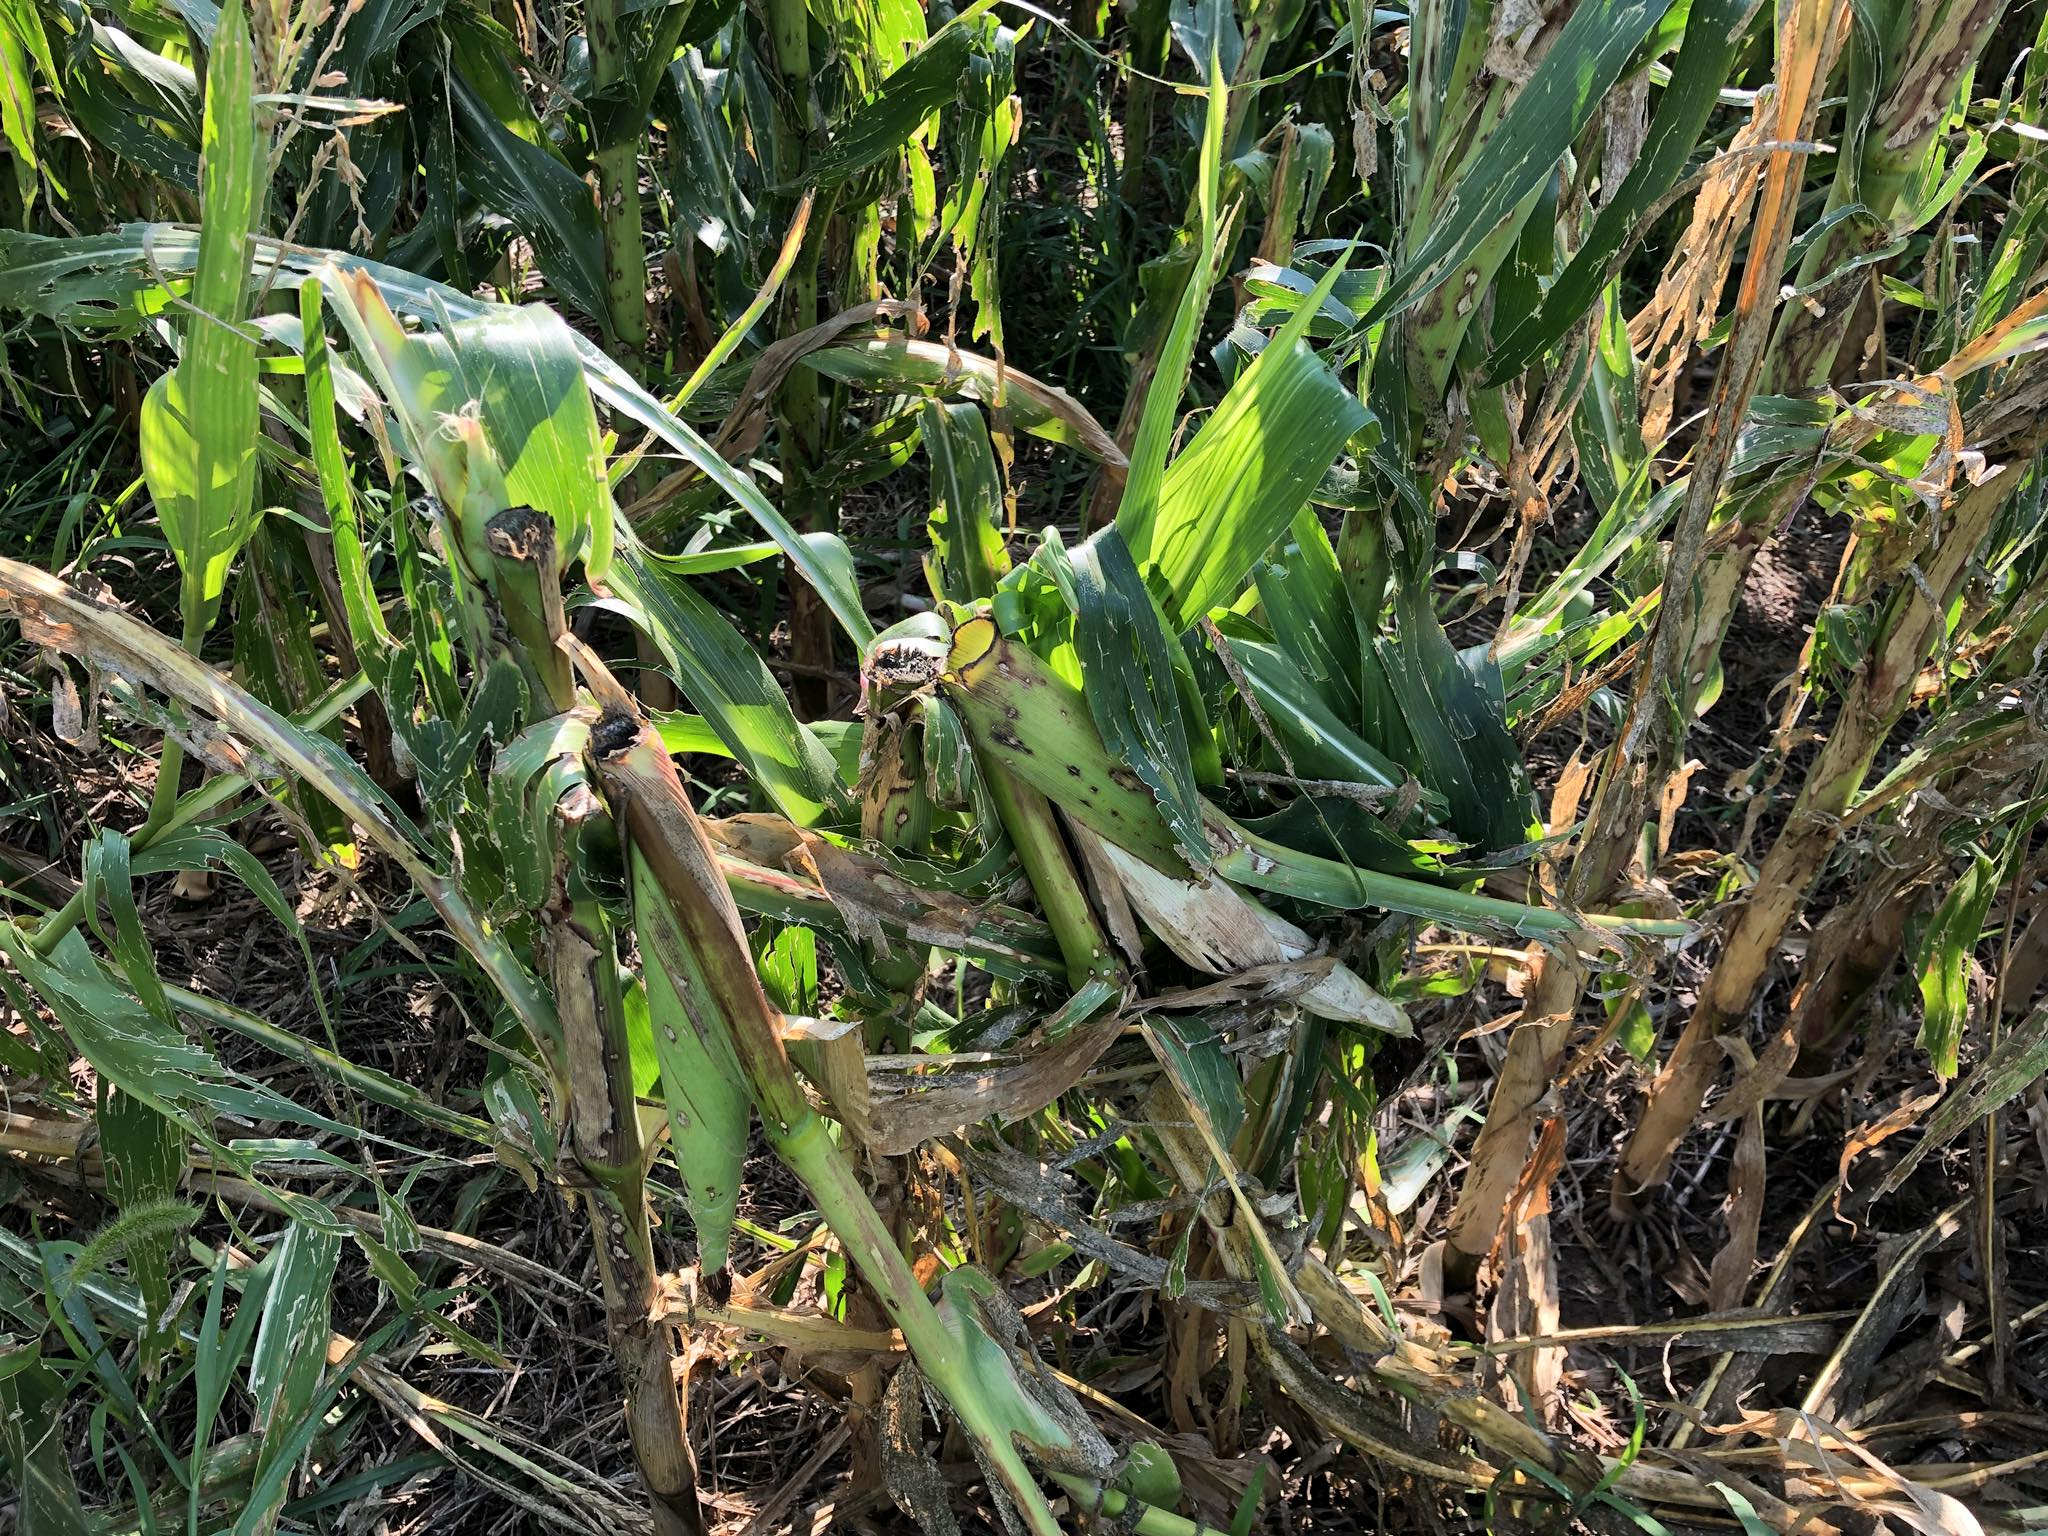 This Antelope county producer easily maxed out his production plan policy with extreme winds and hail in late July 2018.